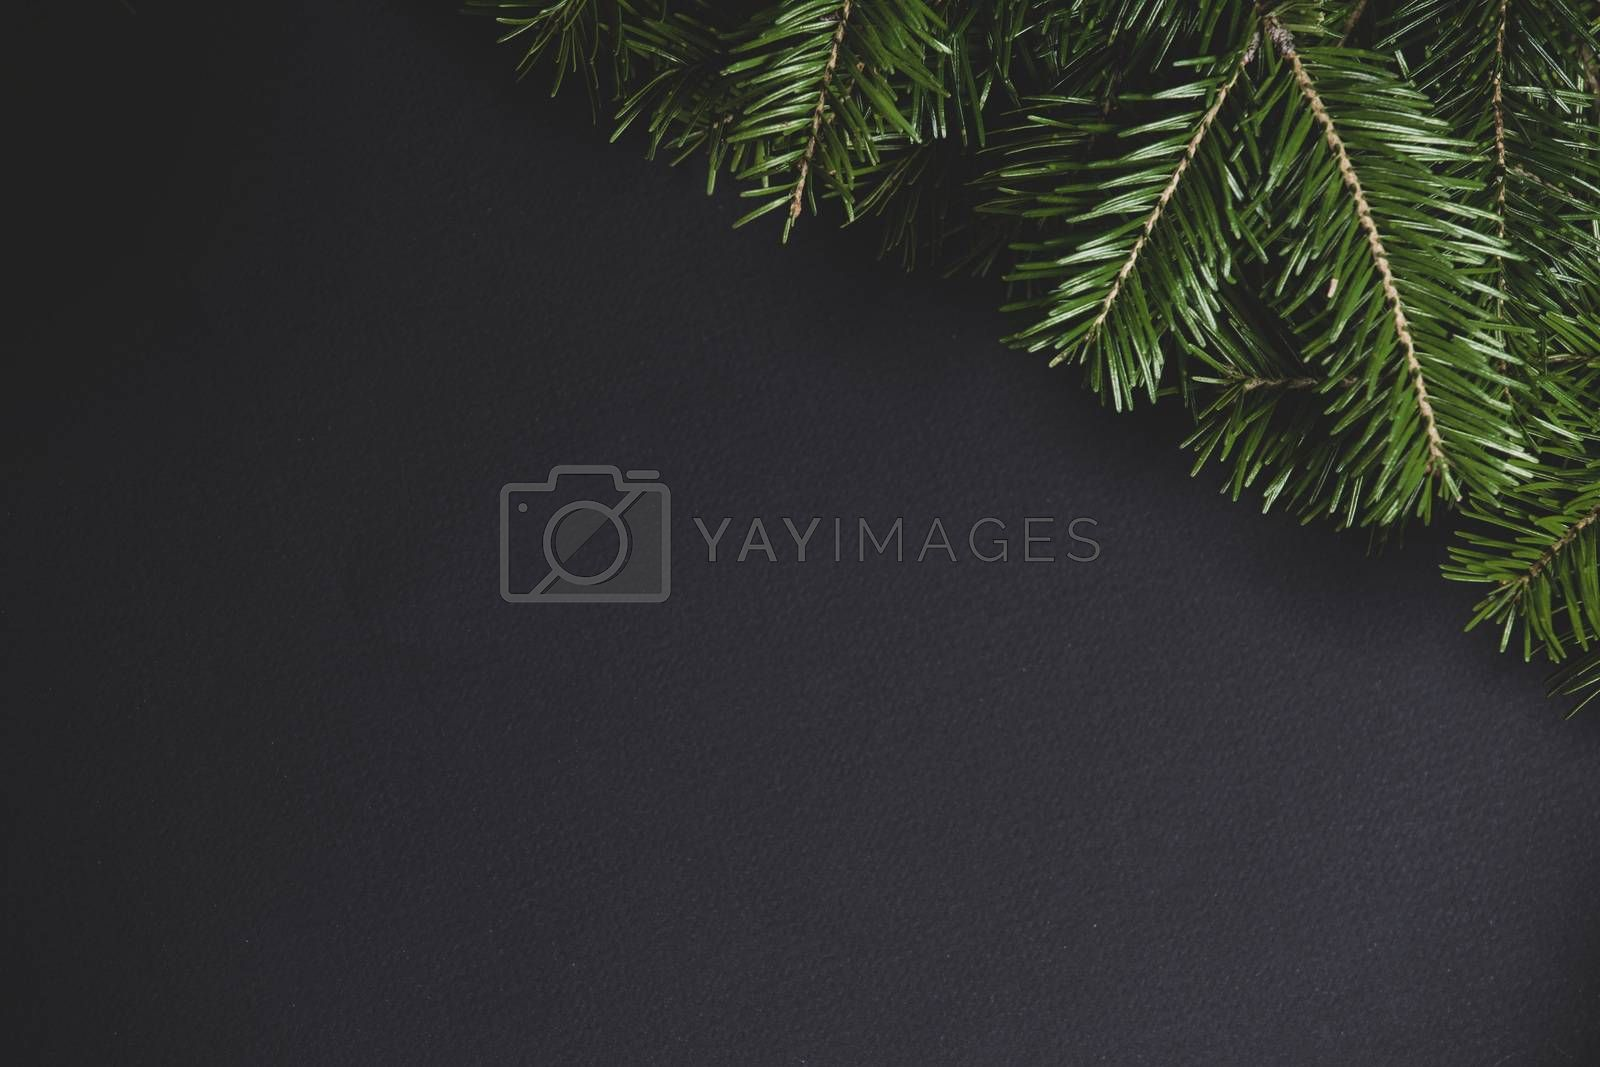 Christmas fir tree branch border fame on black paper stylish background with copy space for text